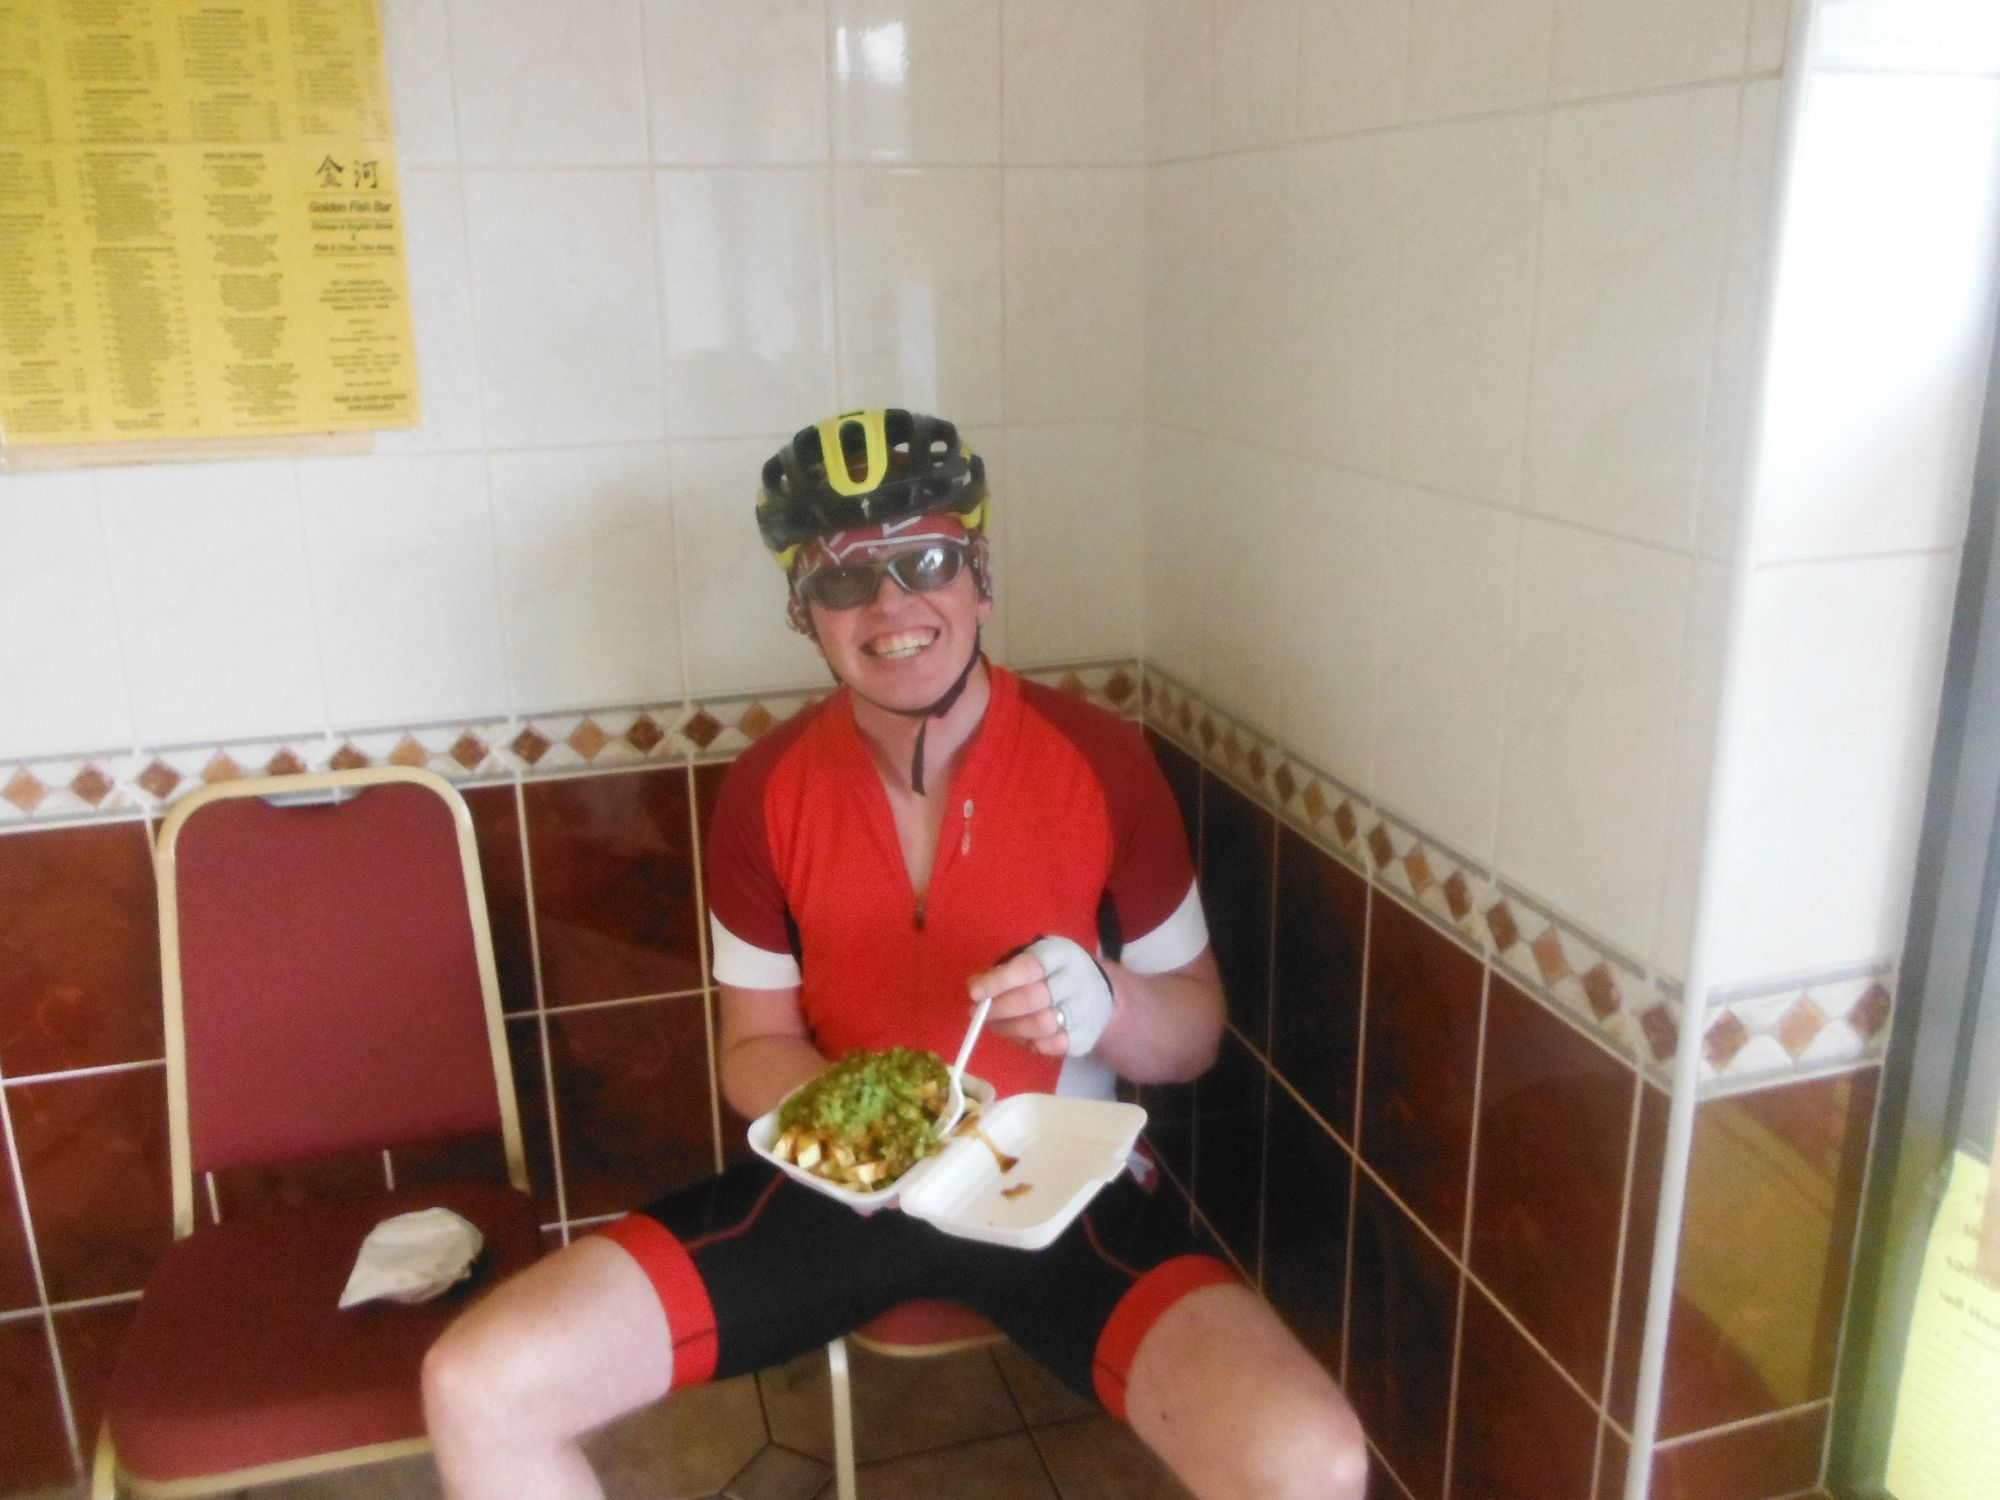 Fuelling up in the chinese